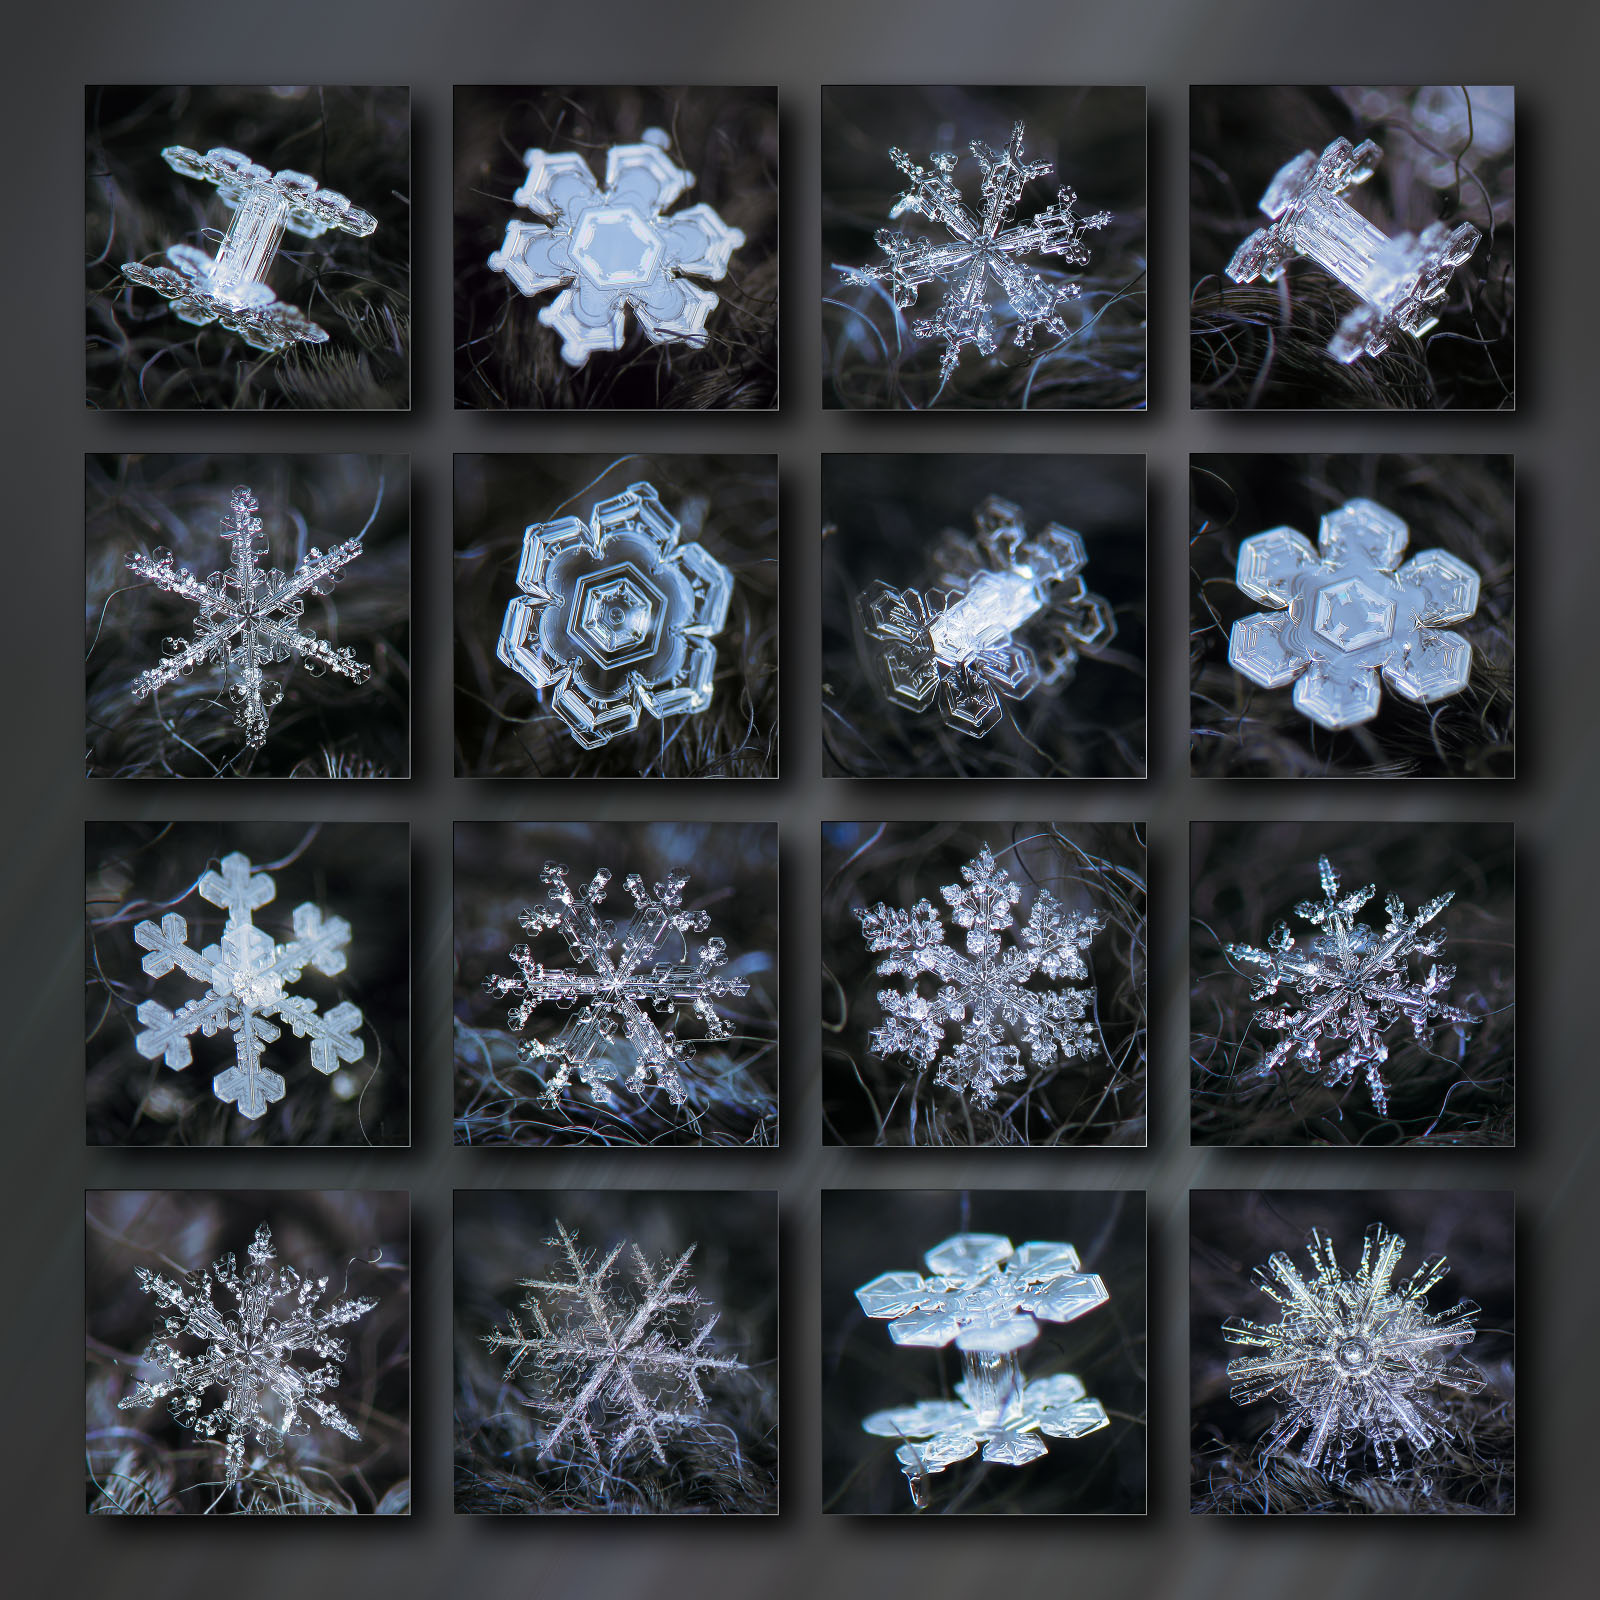 Collection of 16 real snowflakes glowing on dark background - prints at alexey-kljatov.pixels.com